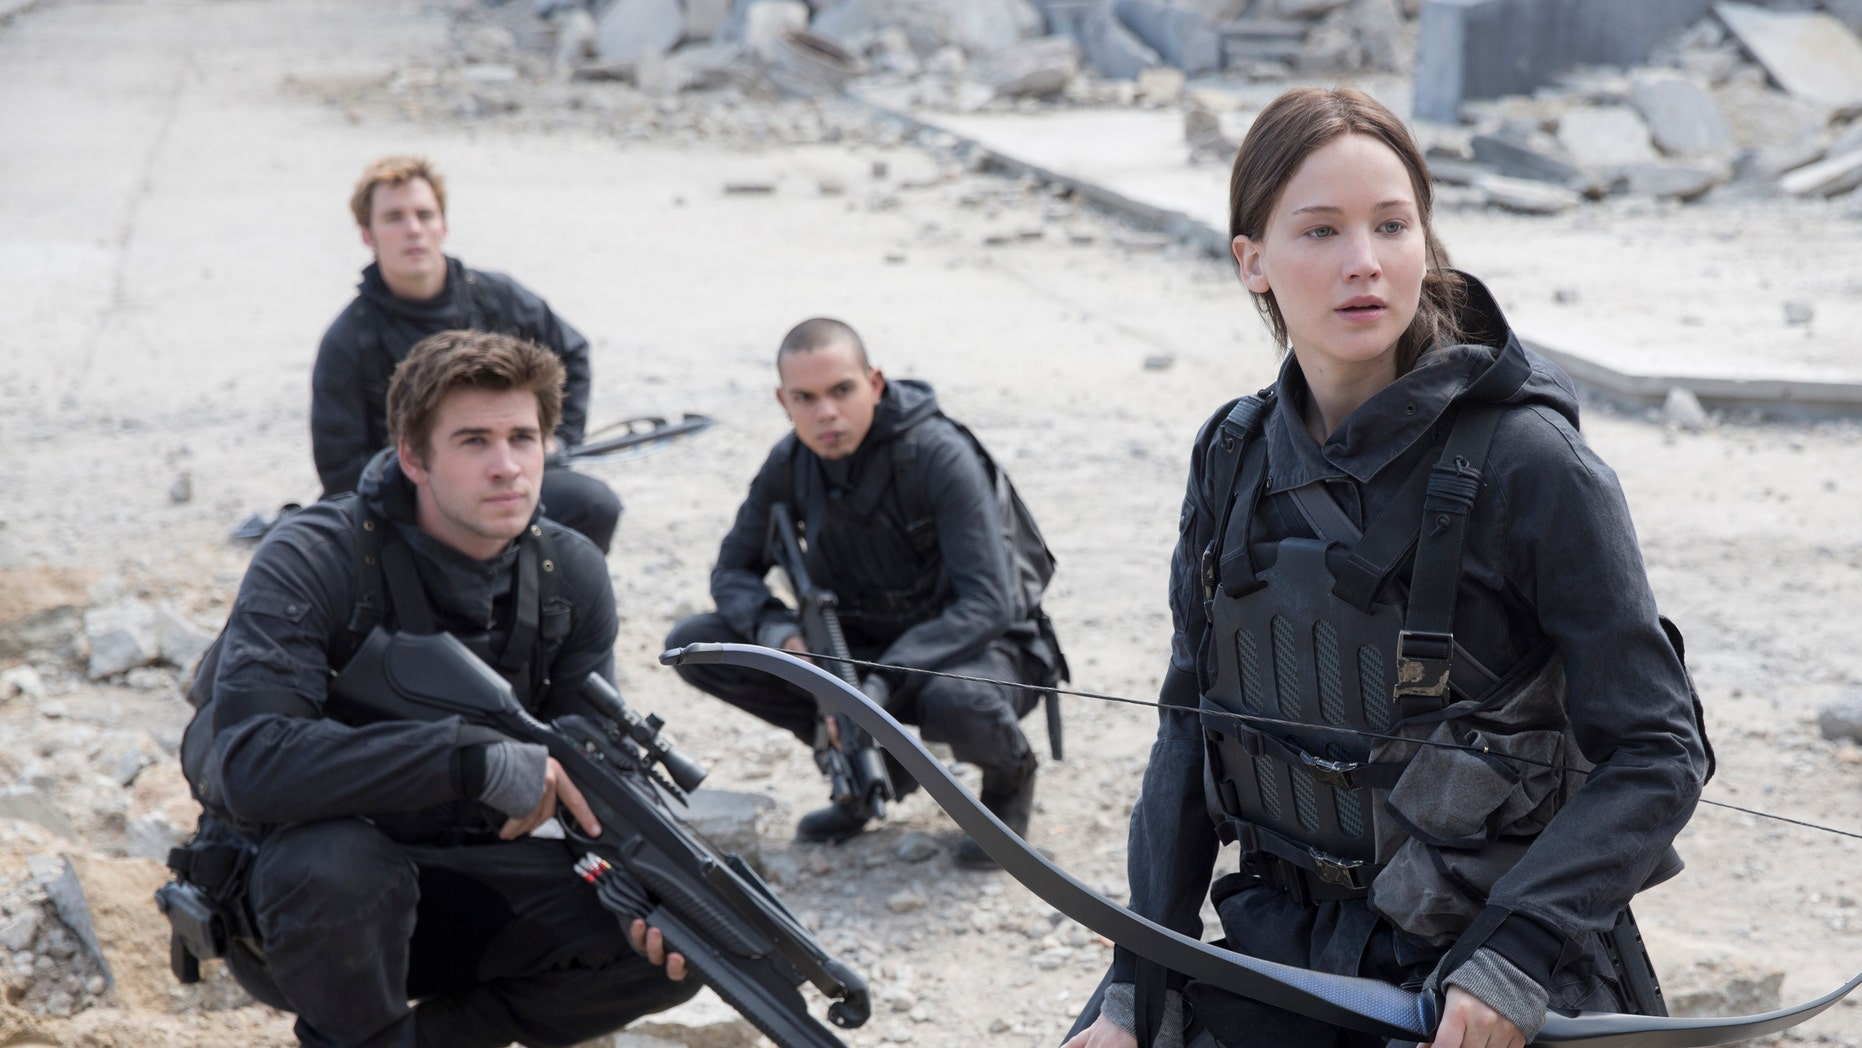 """Liam Hemsworth, left, as Gale Hawthorne, Sam Clafin, back left, as Finnick Odair, Evan Ross, back right, as Messalia, and Jennifer Lawrence, right, as Katniss Everdeen, in the film, """"The Hunger Games: Mockingjay - Part 2."""""""